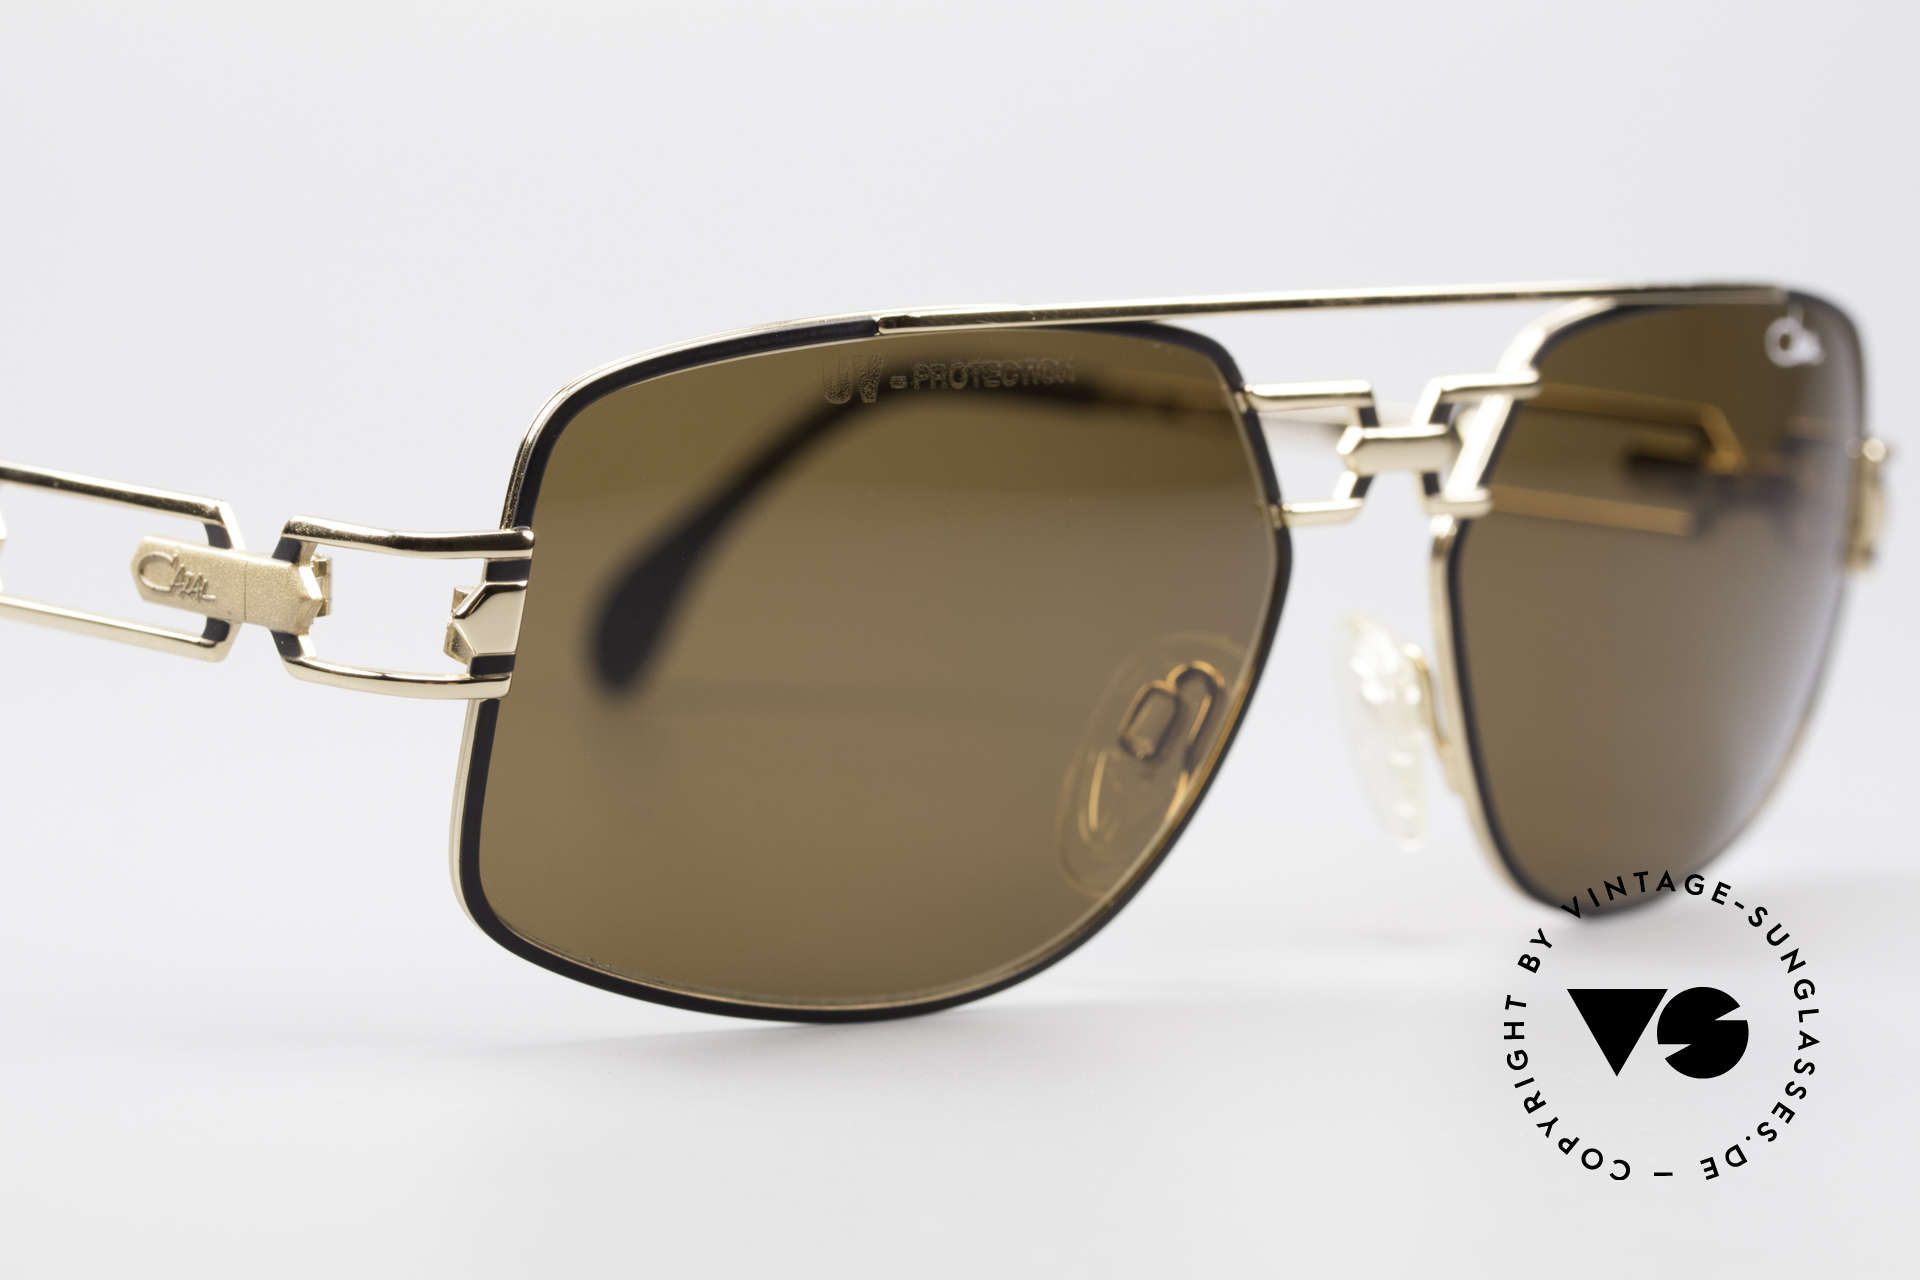 Cazal 972 True 90's No Retro Sunglasses, NO RETRO EYEWEAR, but a real old ORIGINAL from 1997, Made for Men and Women